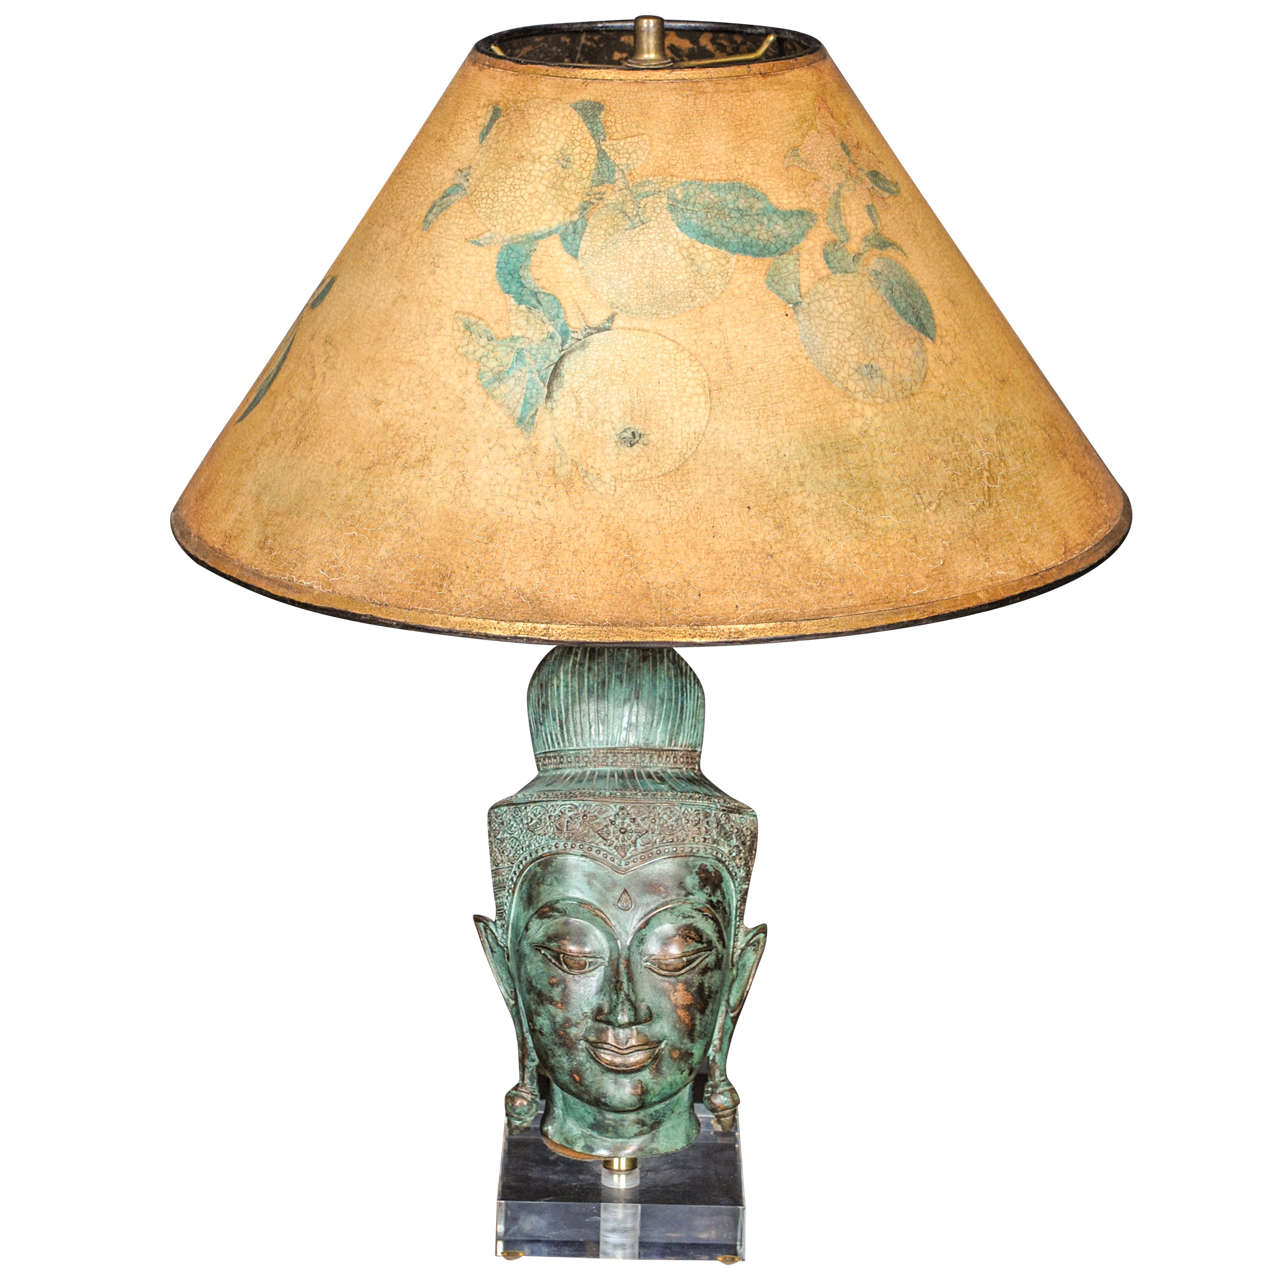 Brass Pineapple Table Lamp This Eclectic Hollywood Regency Style Table Lamp with Thai Buddha Head ...